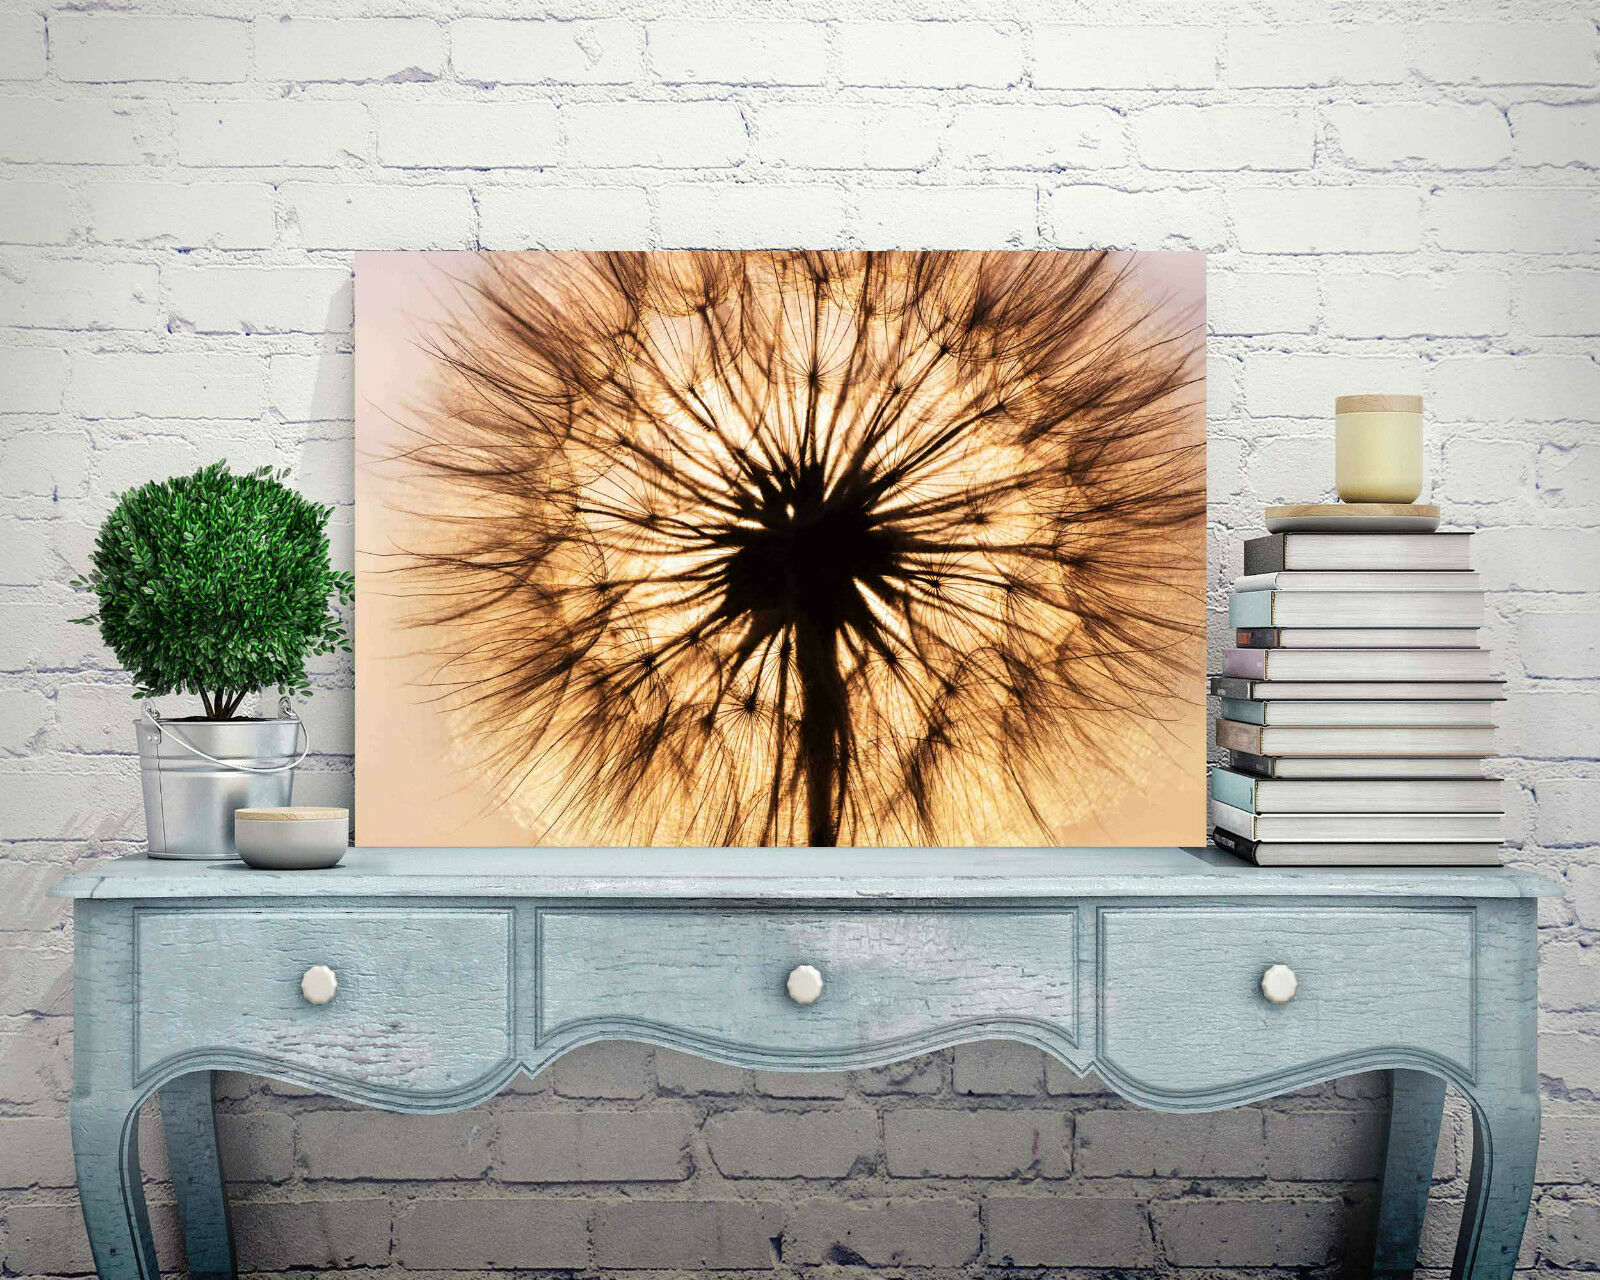 STUNNING ABSTRACT DANDELION FLOWER SUNSET #823 CANVAS PICTURE WALL ART A1